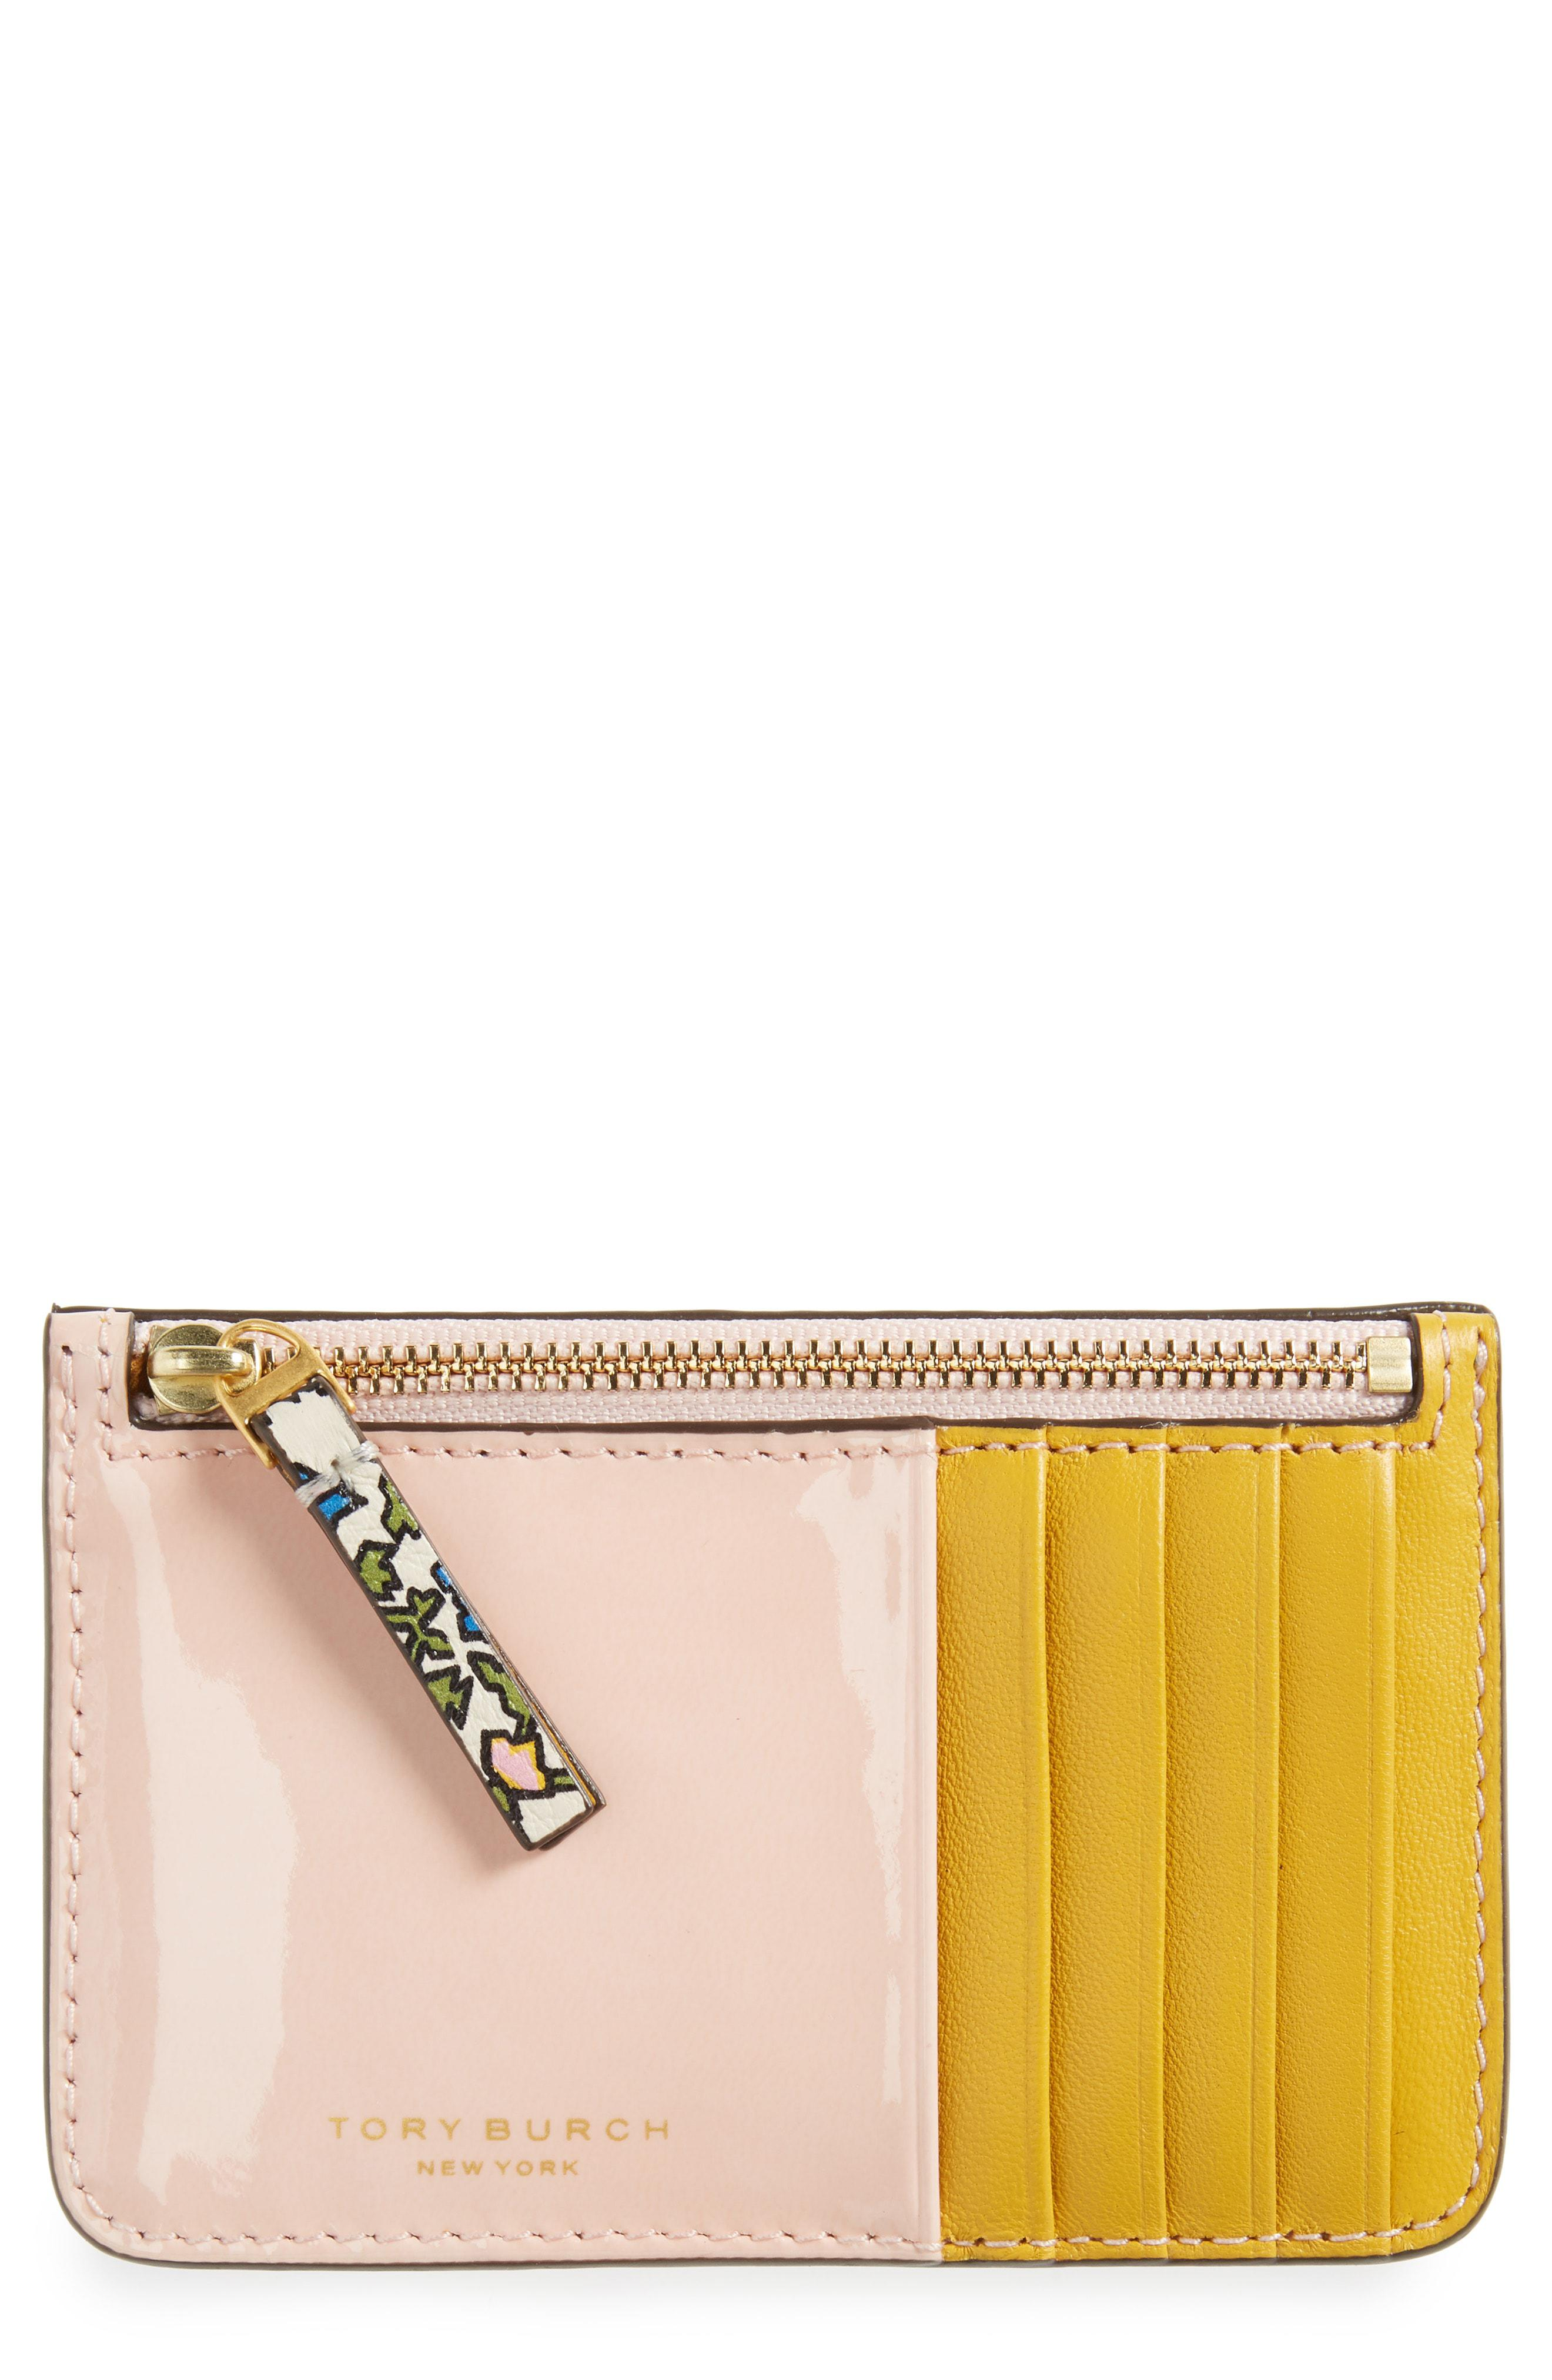 6fe8f96037f Lyst - Tory Burch Colorblock Leather Card Case in White